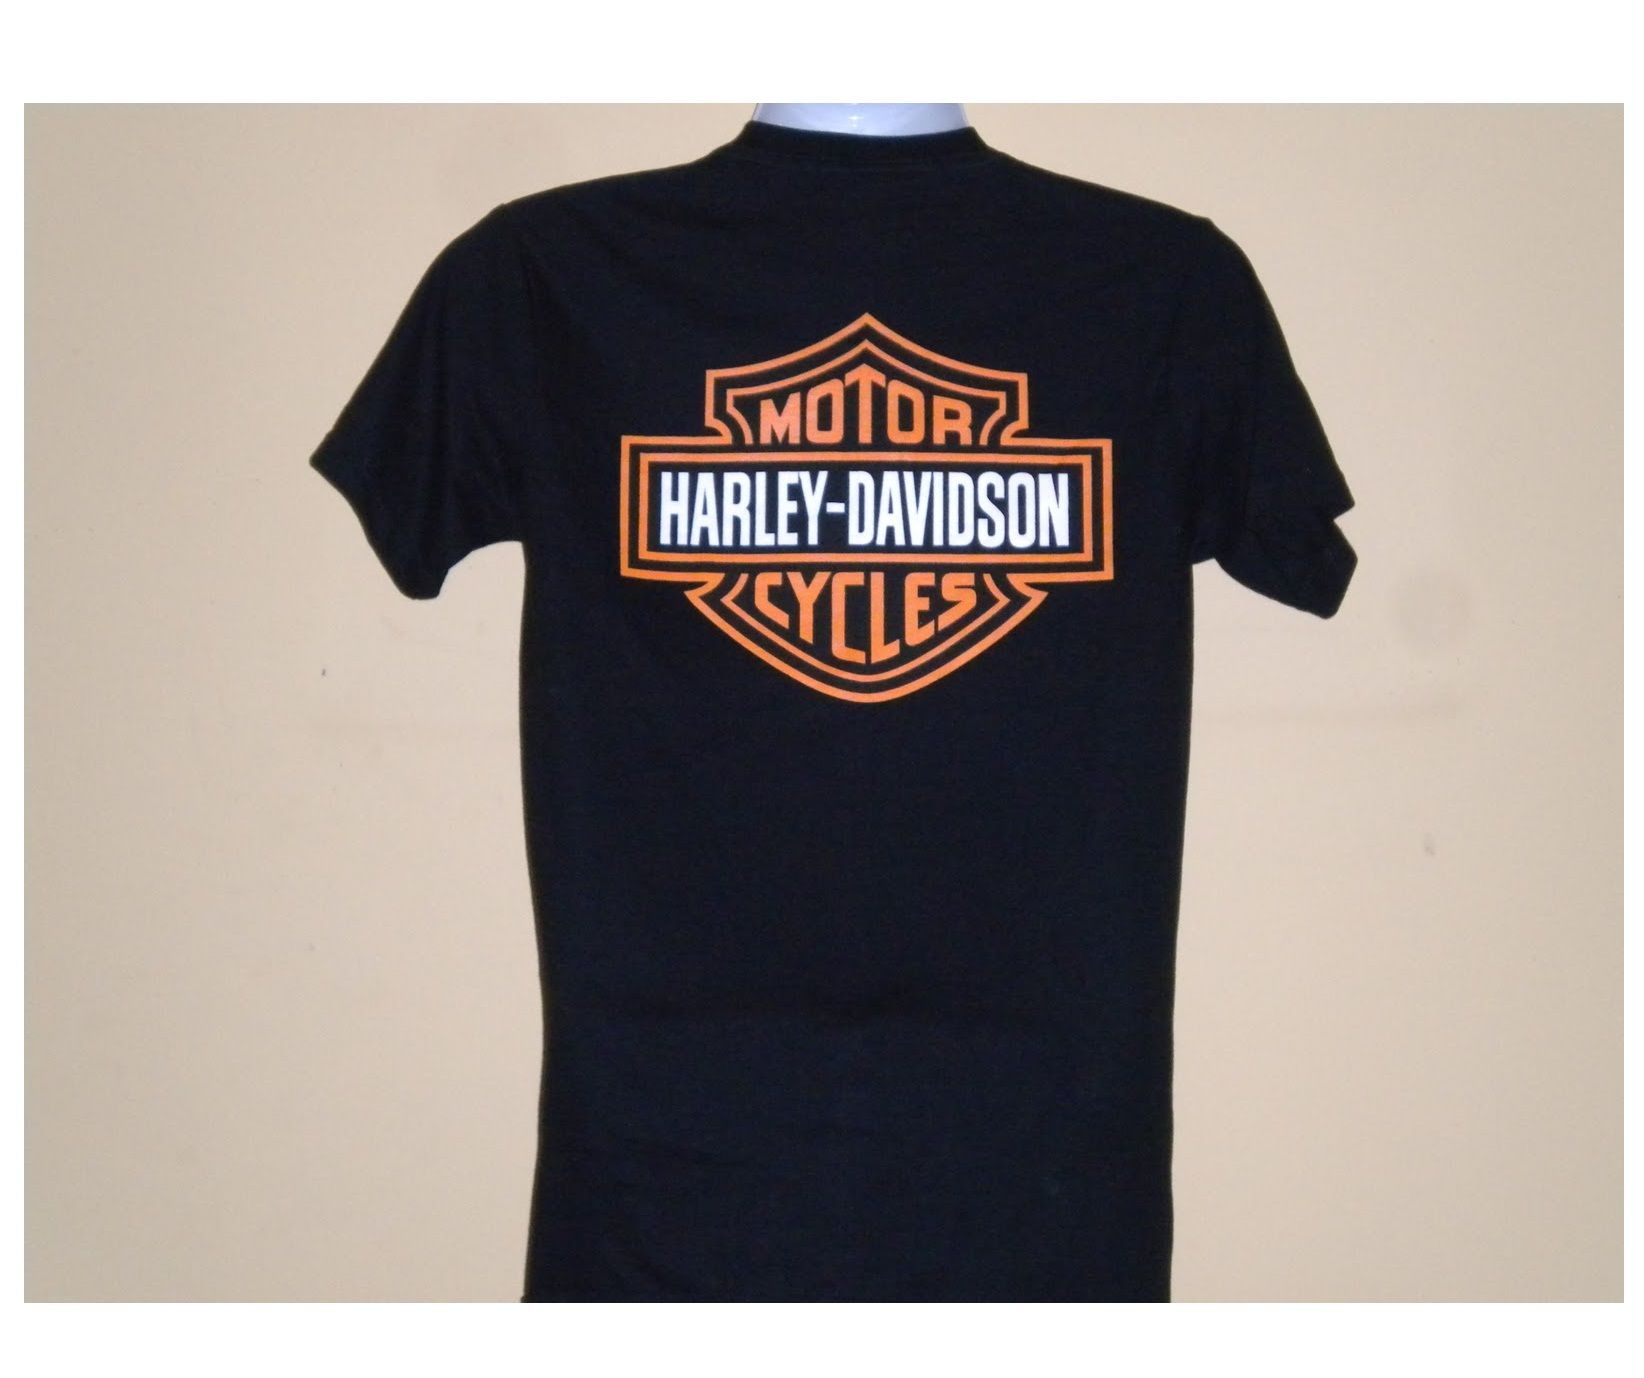 Tags: Very Cheap Harley Davidson Motorcycle T-Shirts Sale